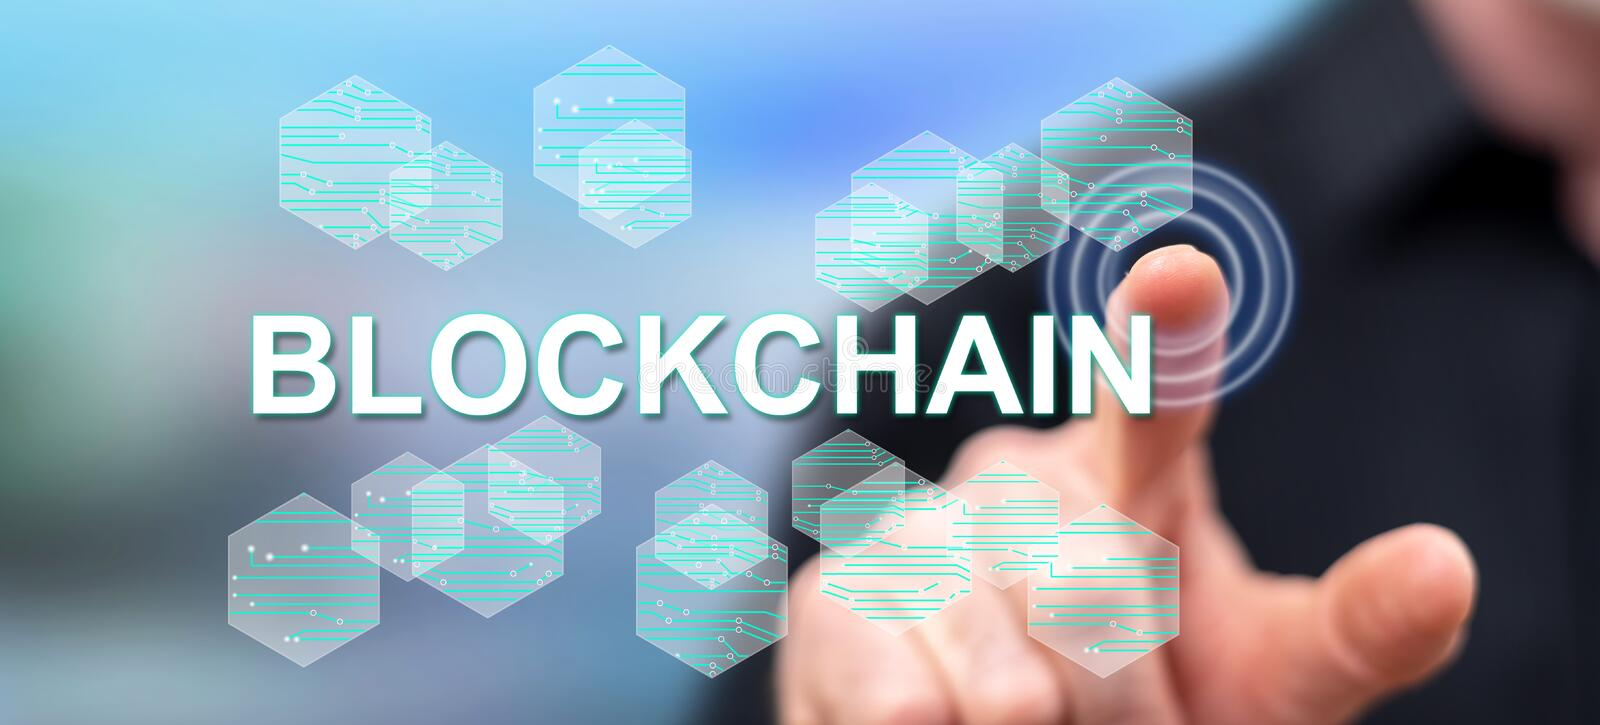 Man touching a blockchain concept stock image